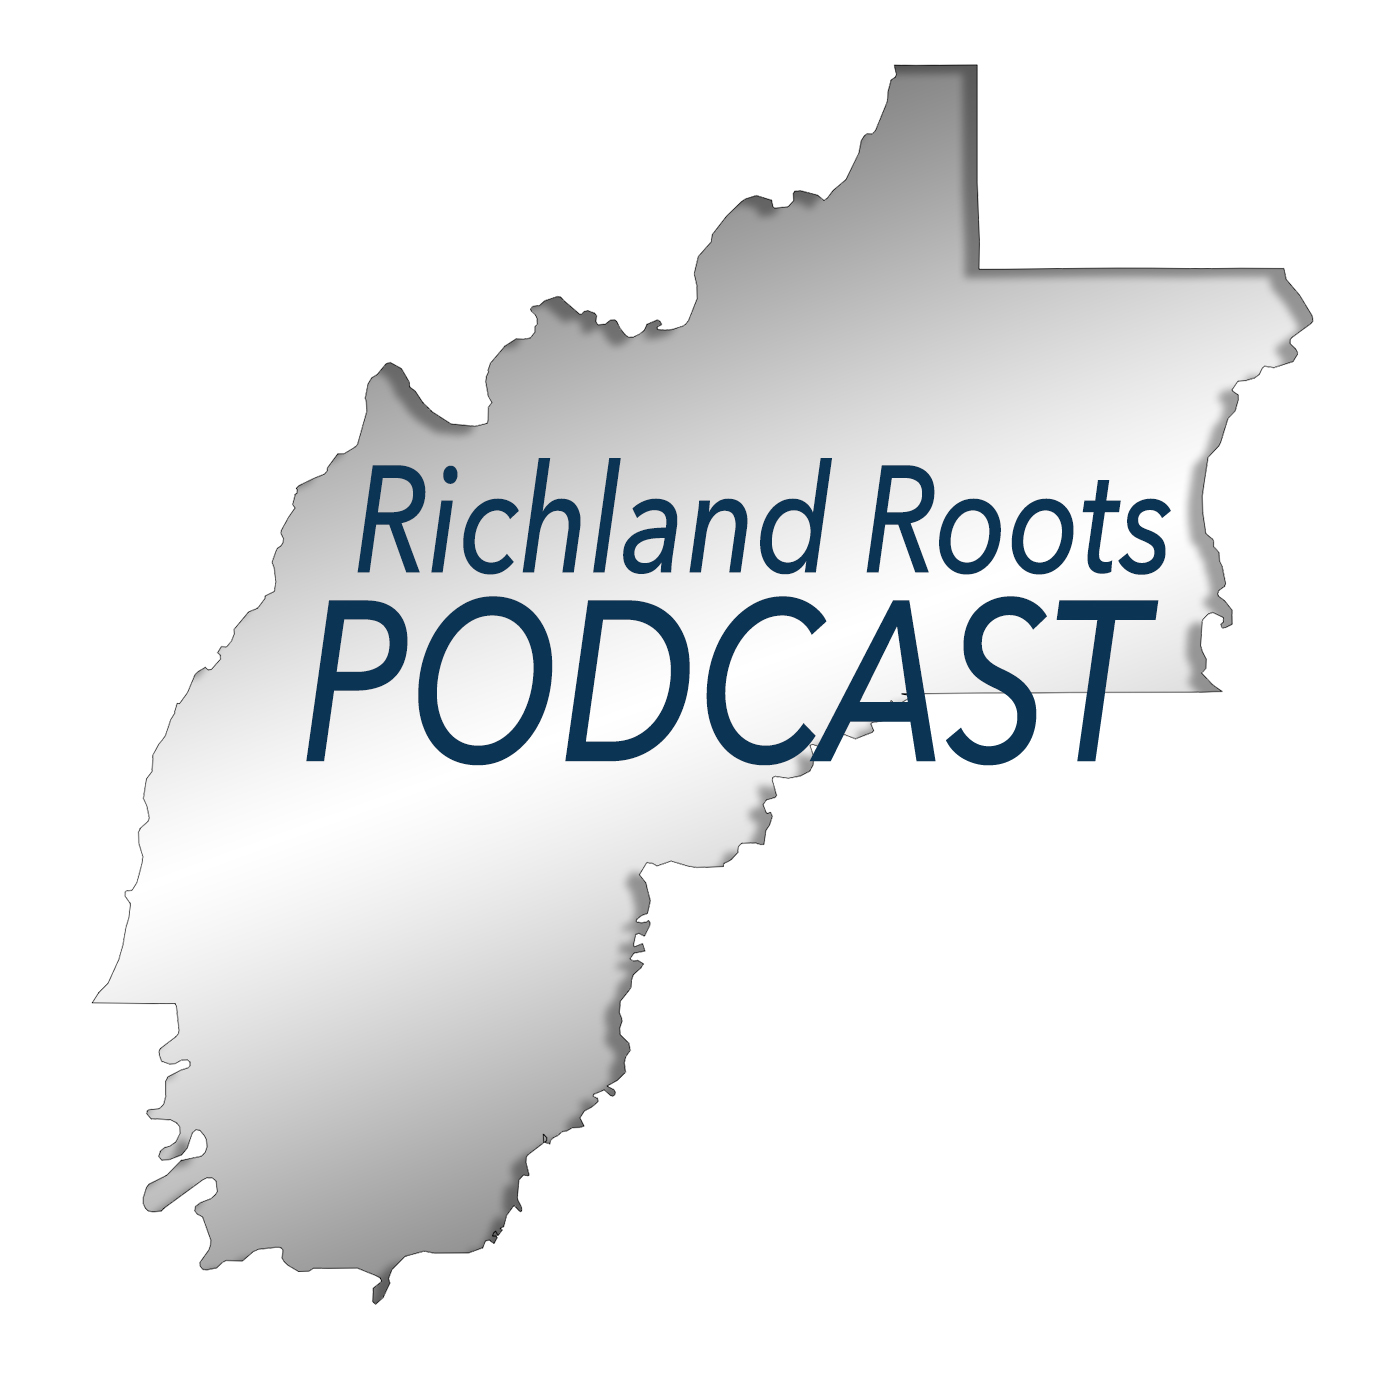 RichlandRoots Podcast by Luke J. Letlow